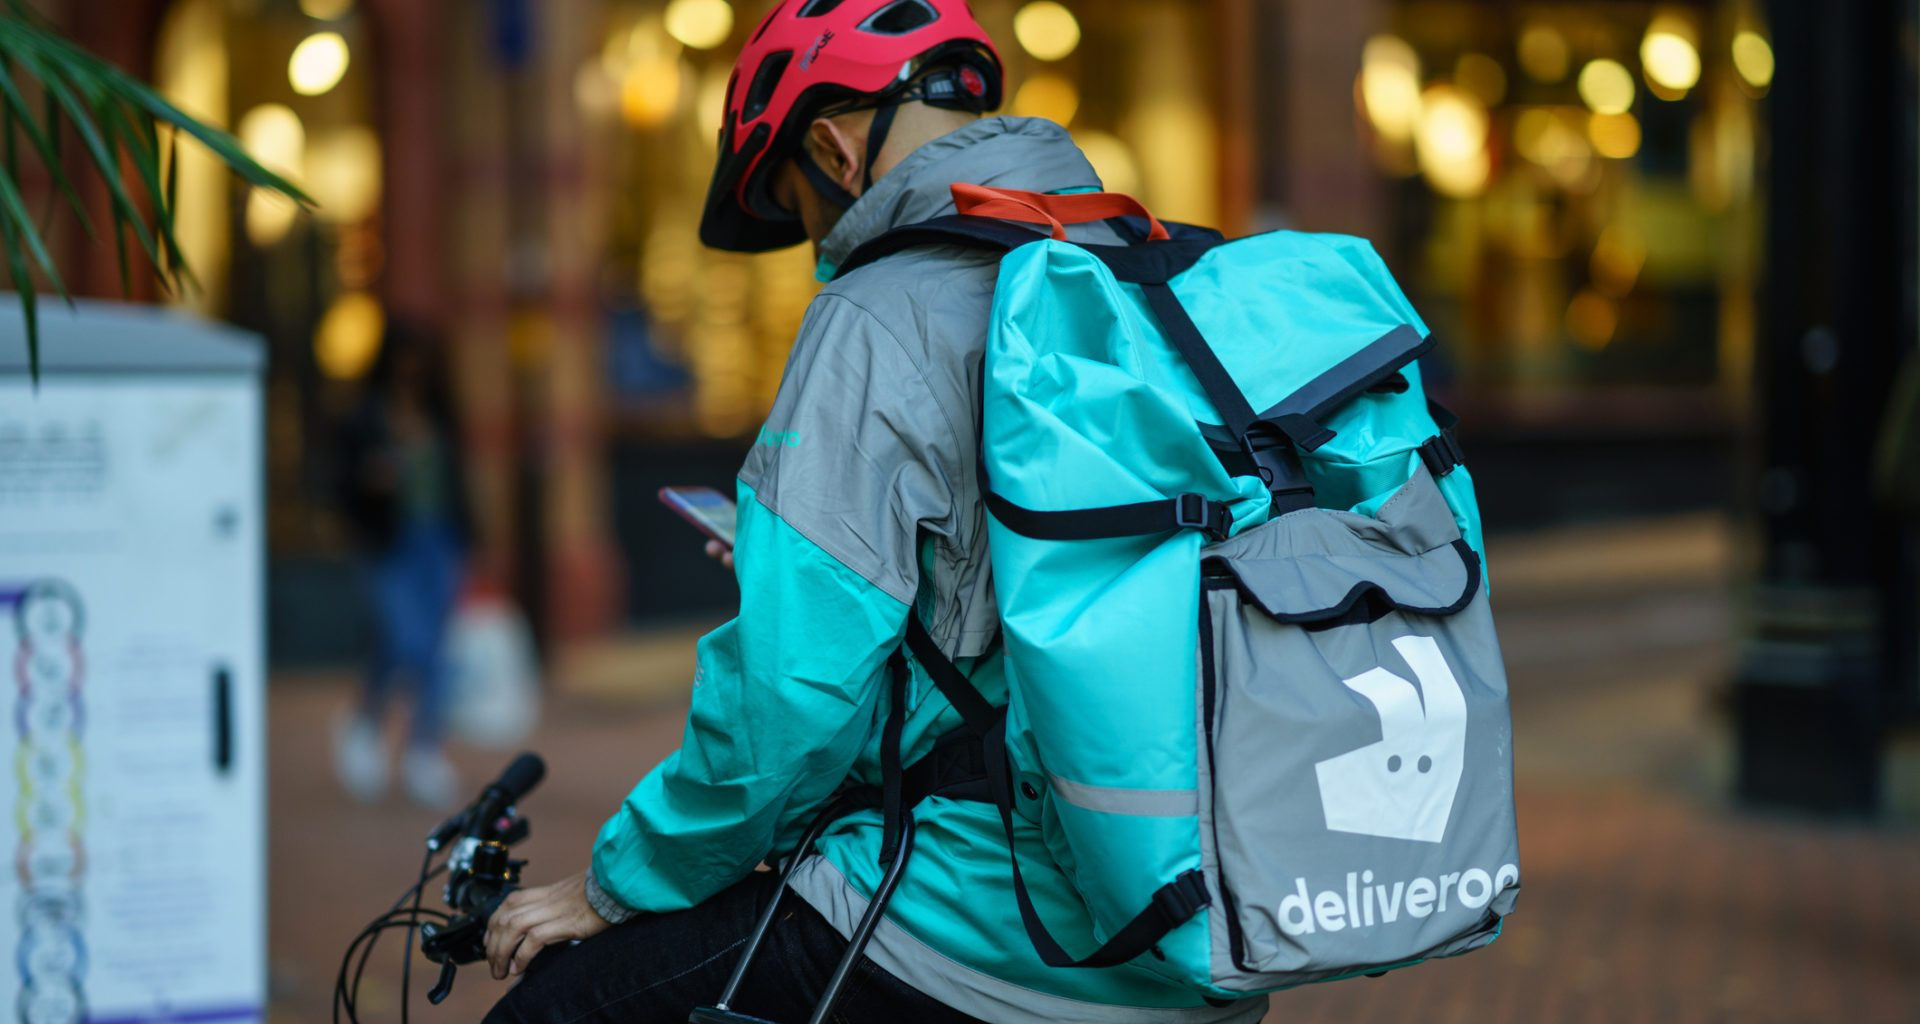 Food delivery firms must address rider safety concerns, say campaigners 8